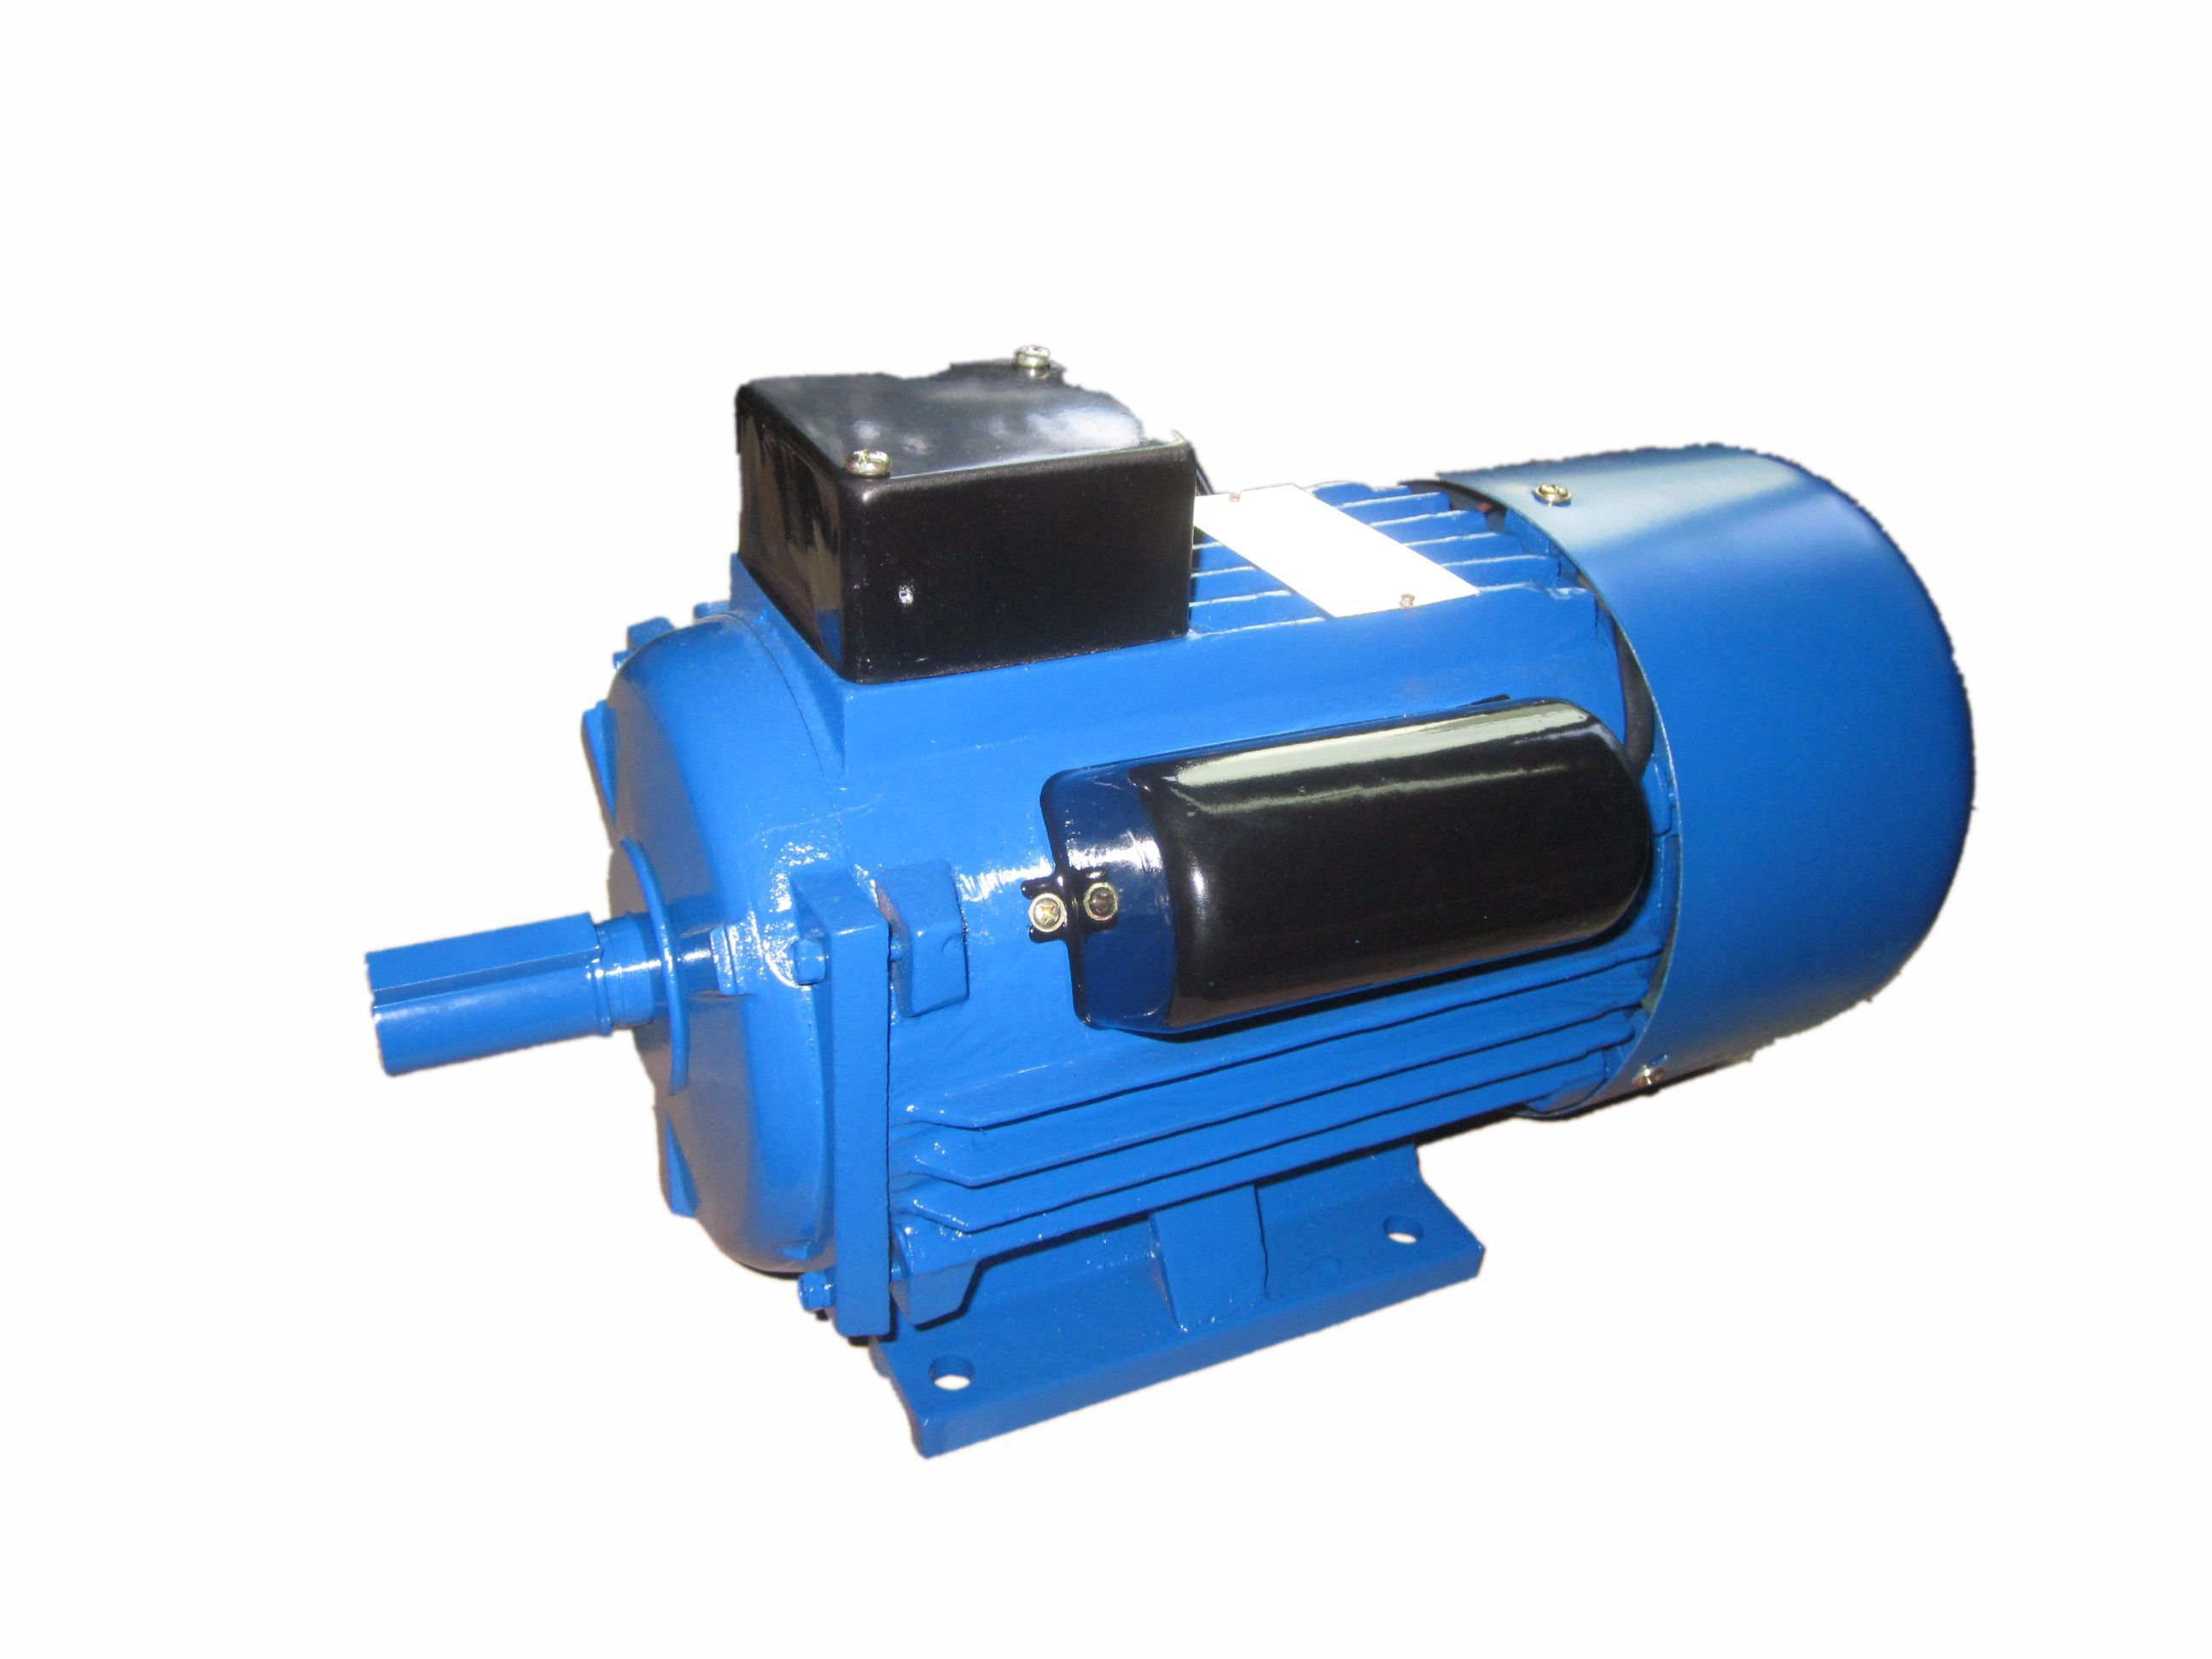 China 220v ycl single phase motor photos pictures made for 220v 3 phase motor